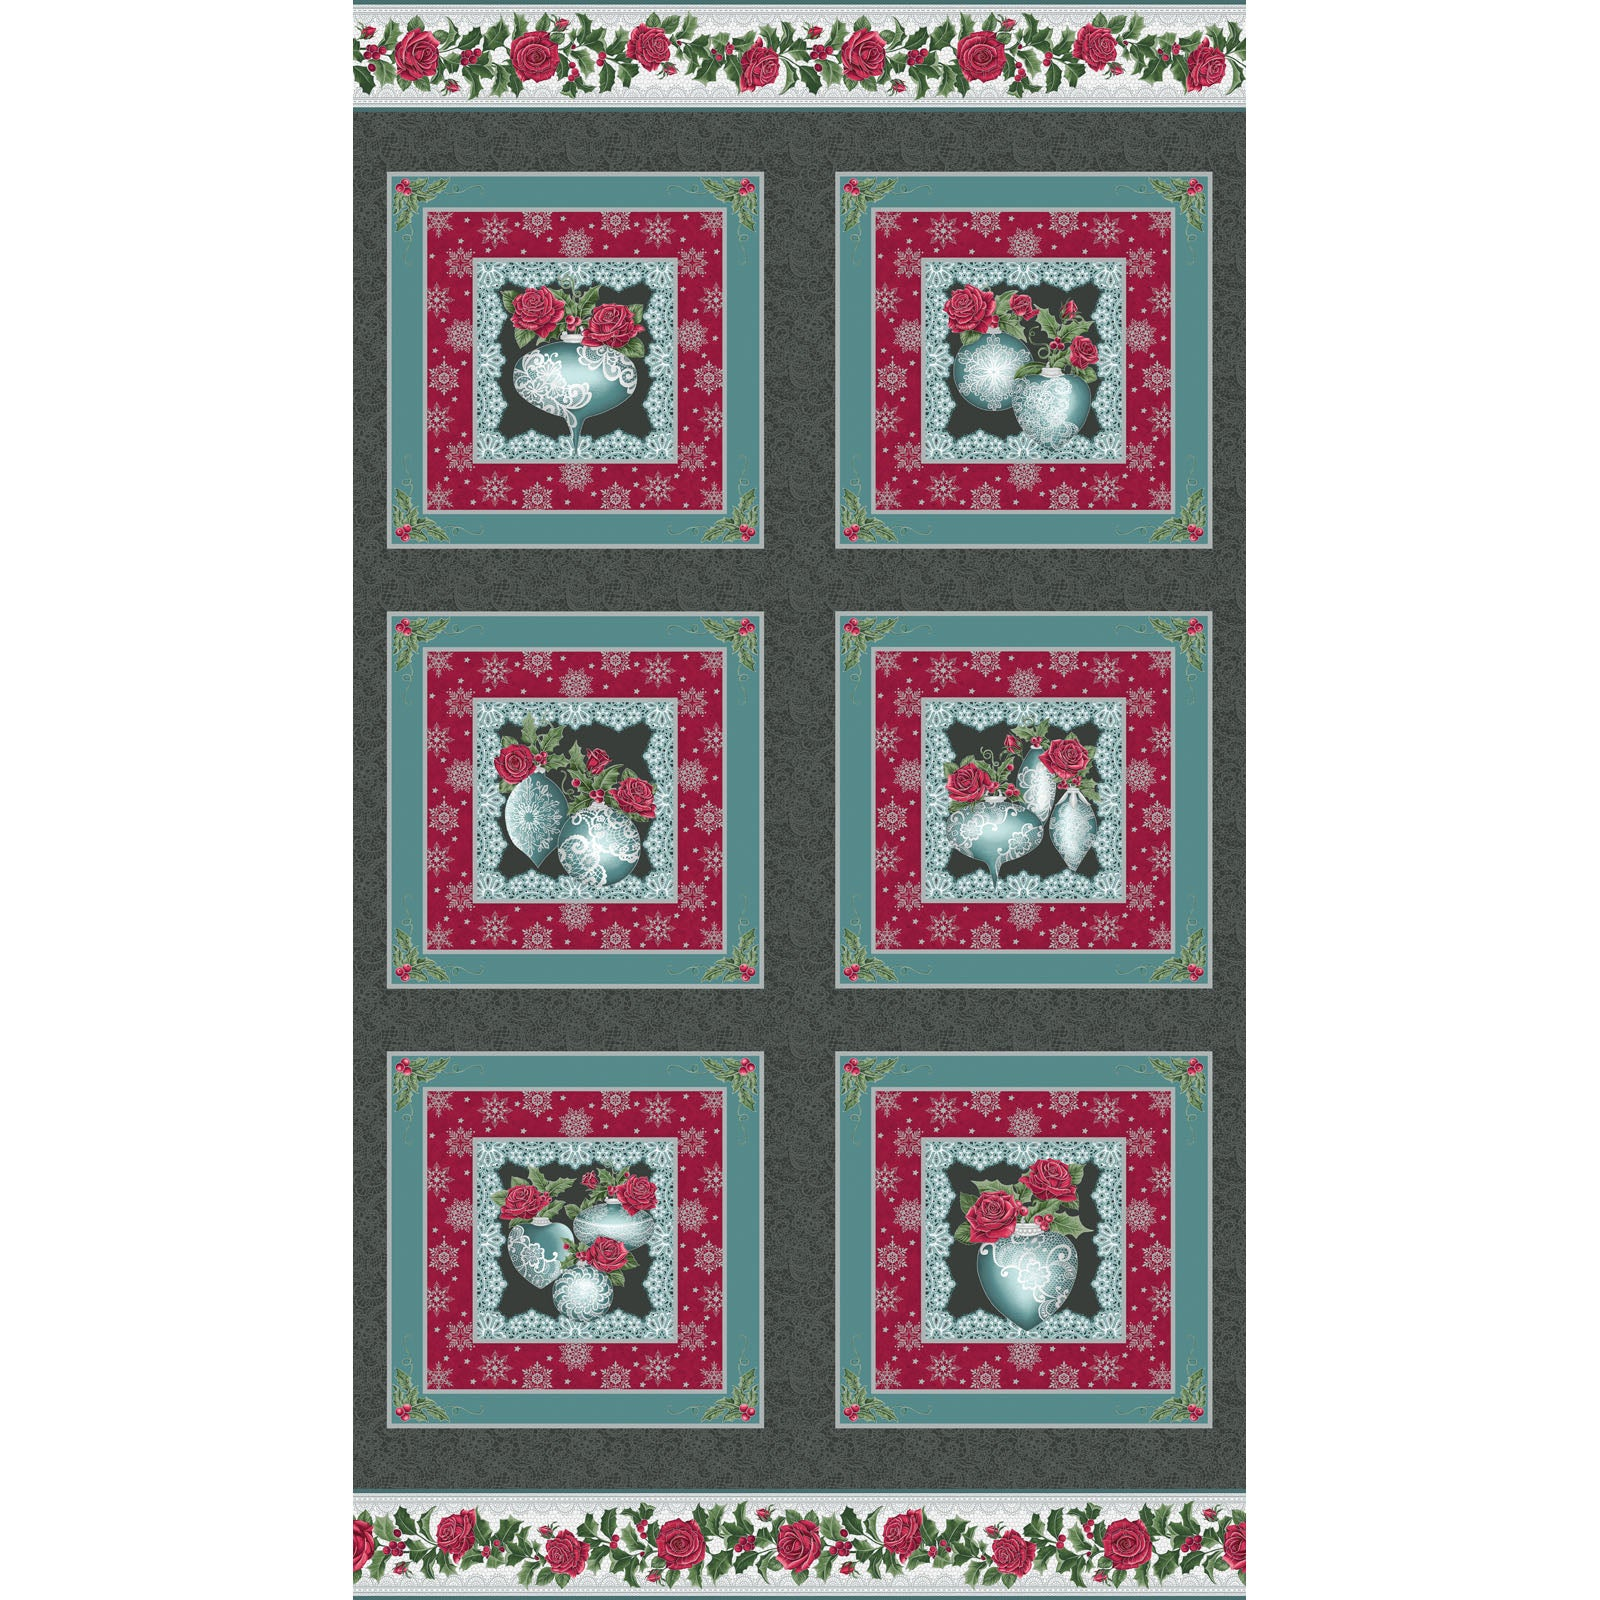 A FESTIVE SEASON III Festive Lace Ornament Panel charcoal/teal